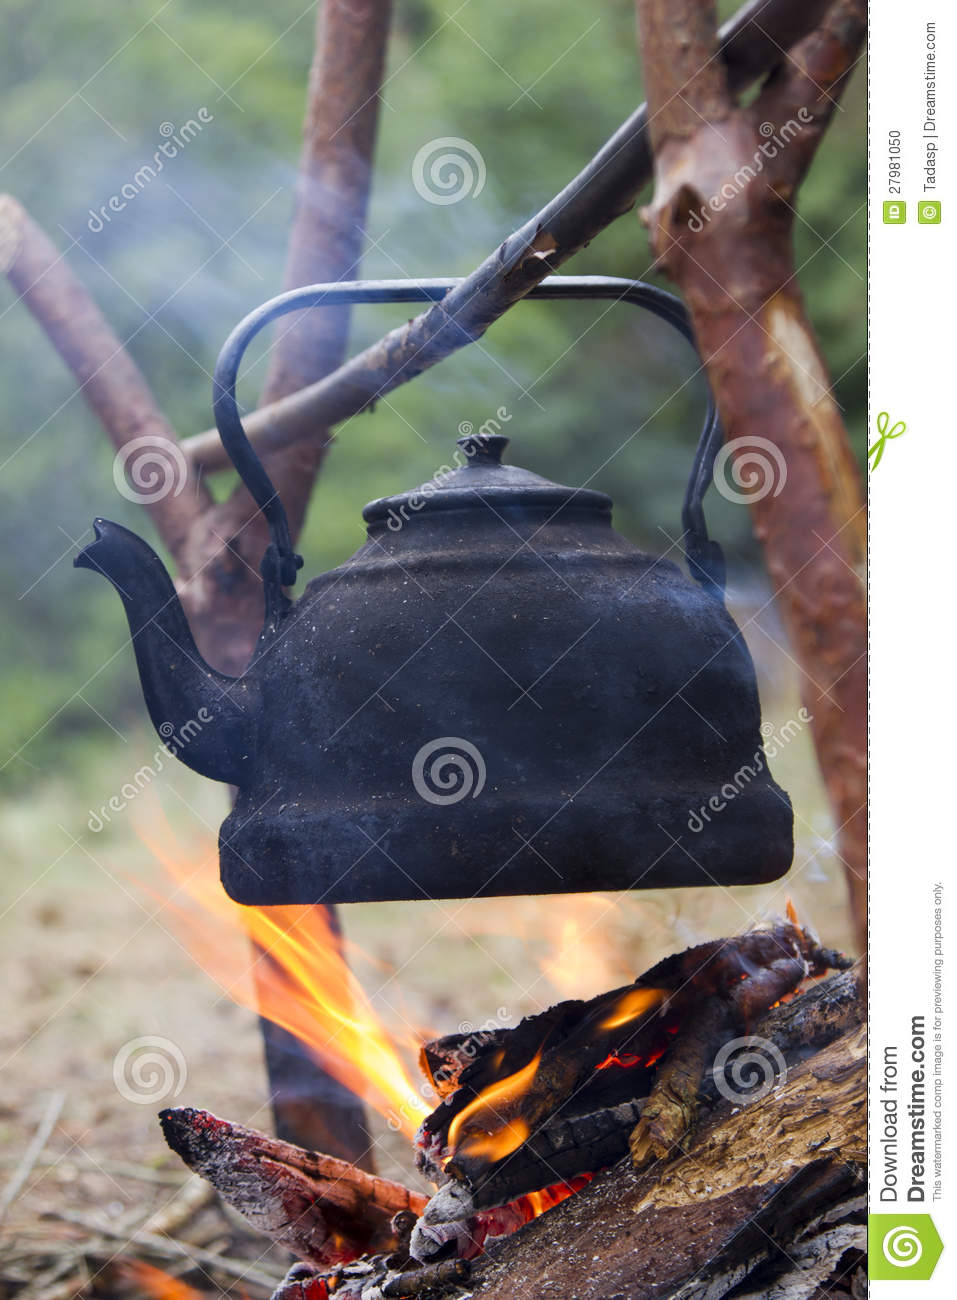 Teapot Over Campfire Stock Photo Image Of Coal Natural